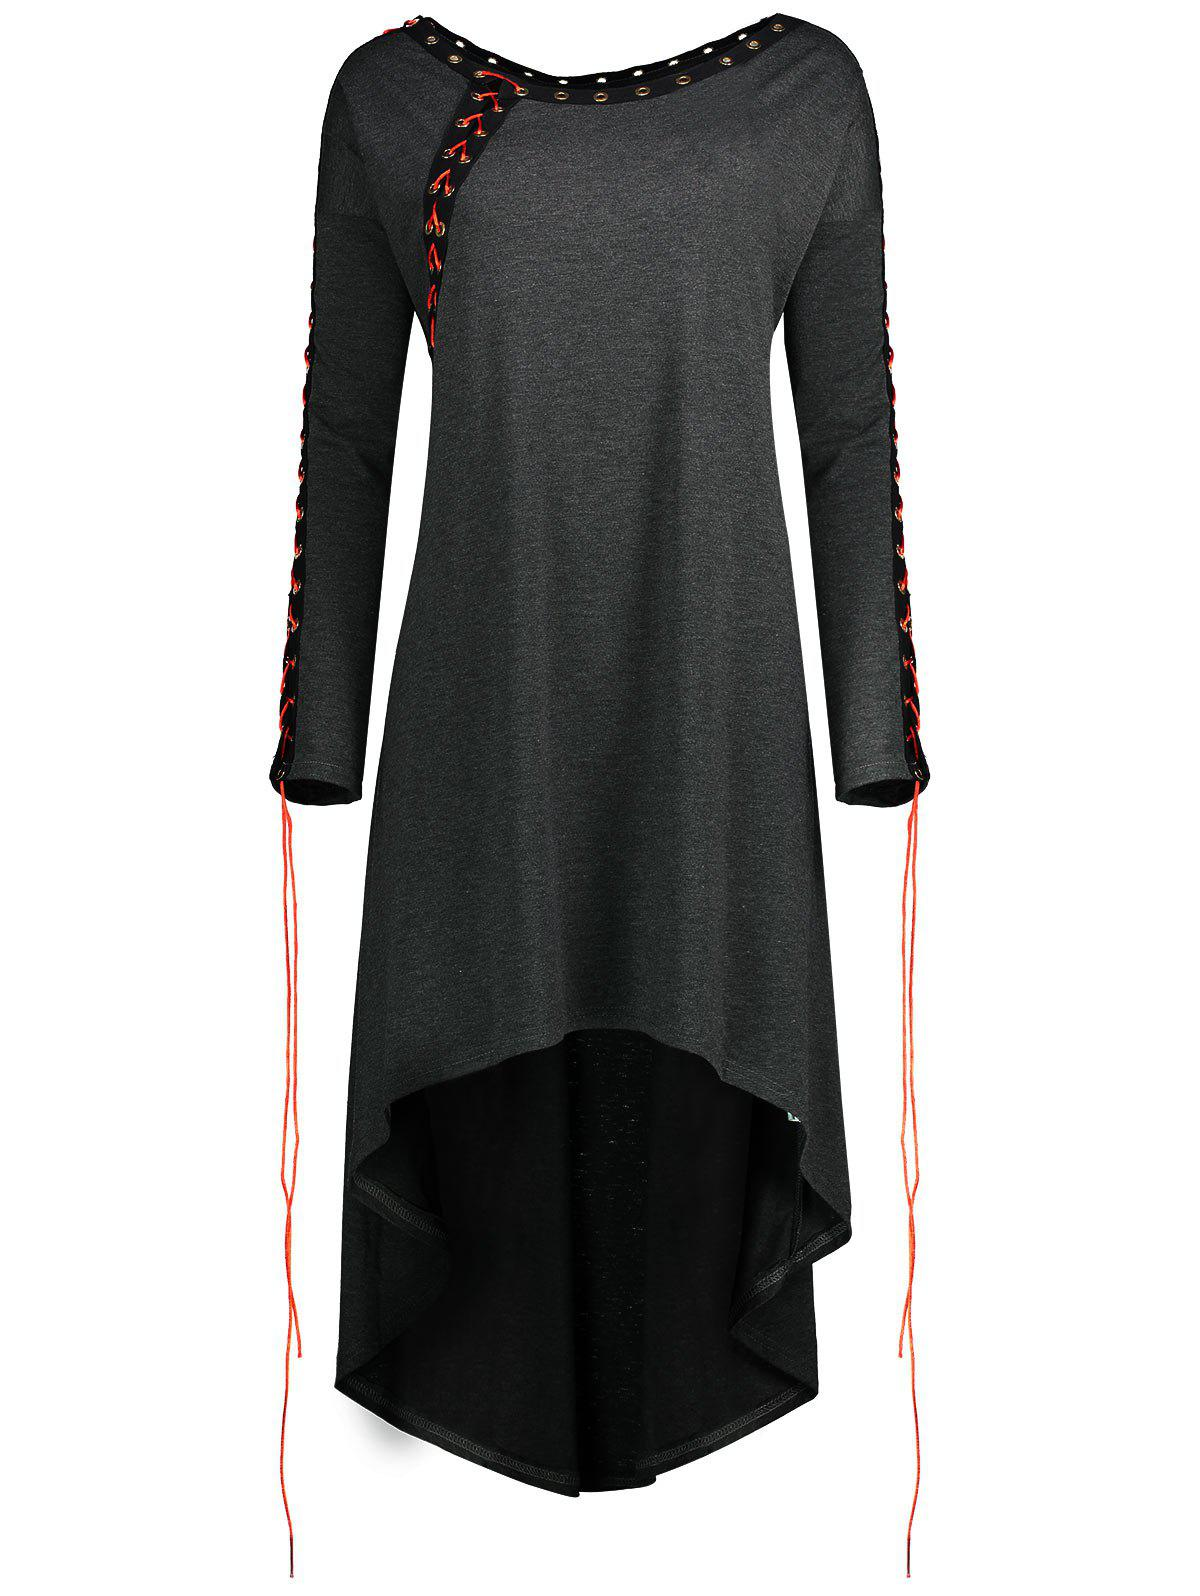 Lace Up Plus Size Asymmetric Tunic Top - DARK GRAY 3XL